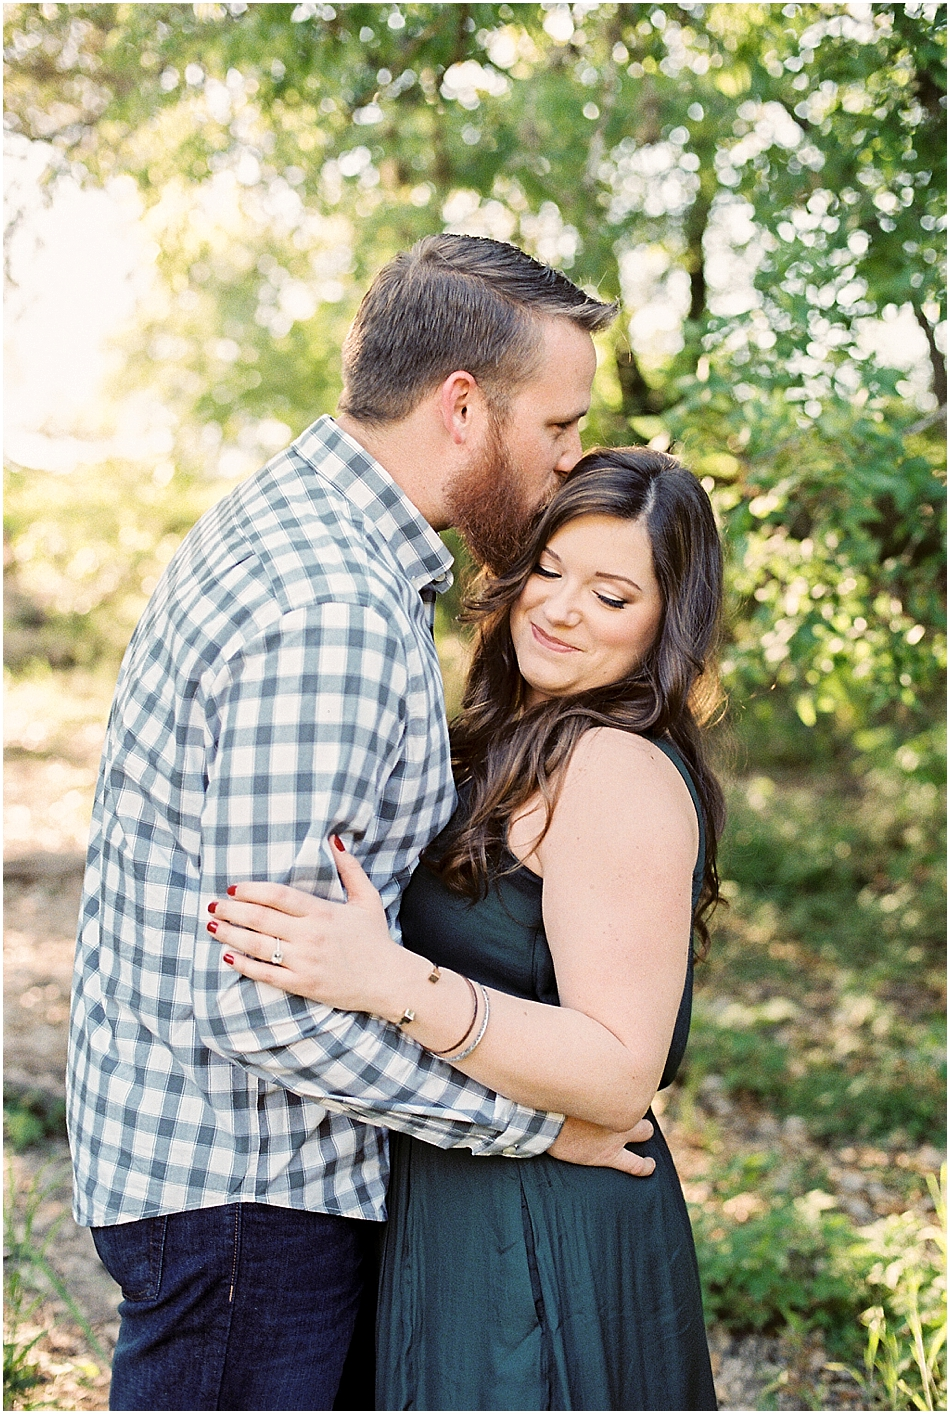 Brooke + Nick | Fine Art Creek Side Engagement | Film | Emilie Anne Photography-12.jpg